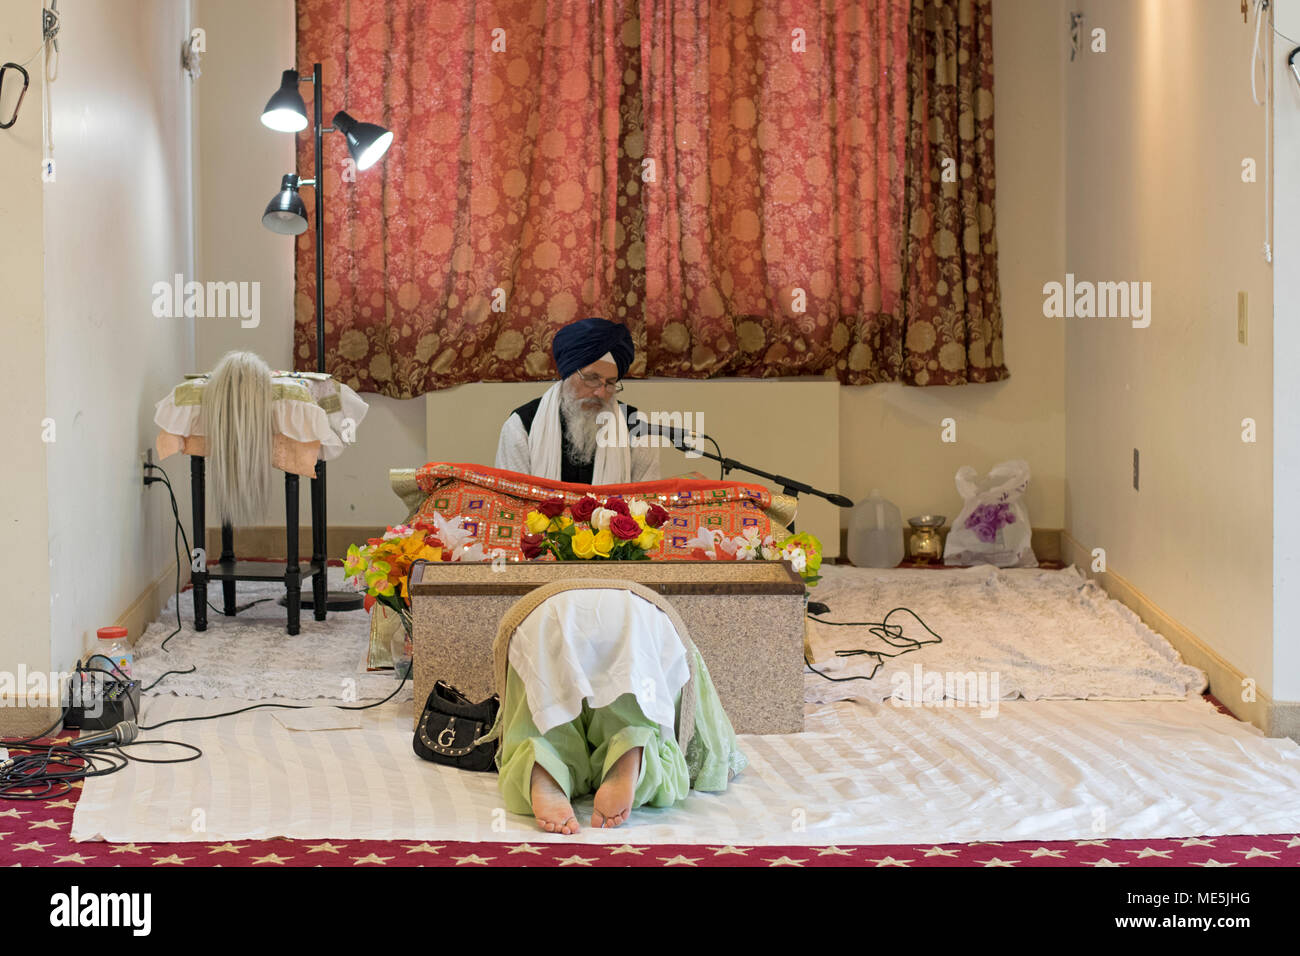 A woman bowing in front of a Sikh priest, a Granthi, who's reading Sri Guru Granth Sahib, the Holy Book in Sikhism. In Richmond Hill Queens, New York. - Stock Image